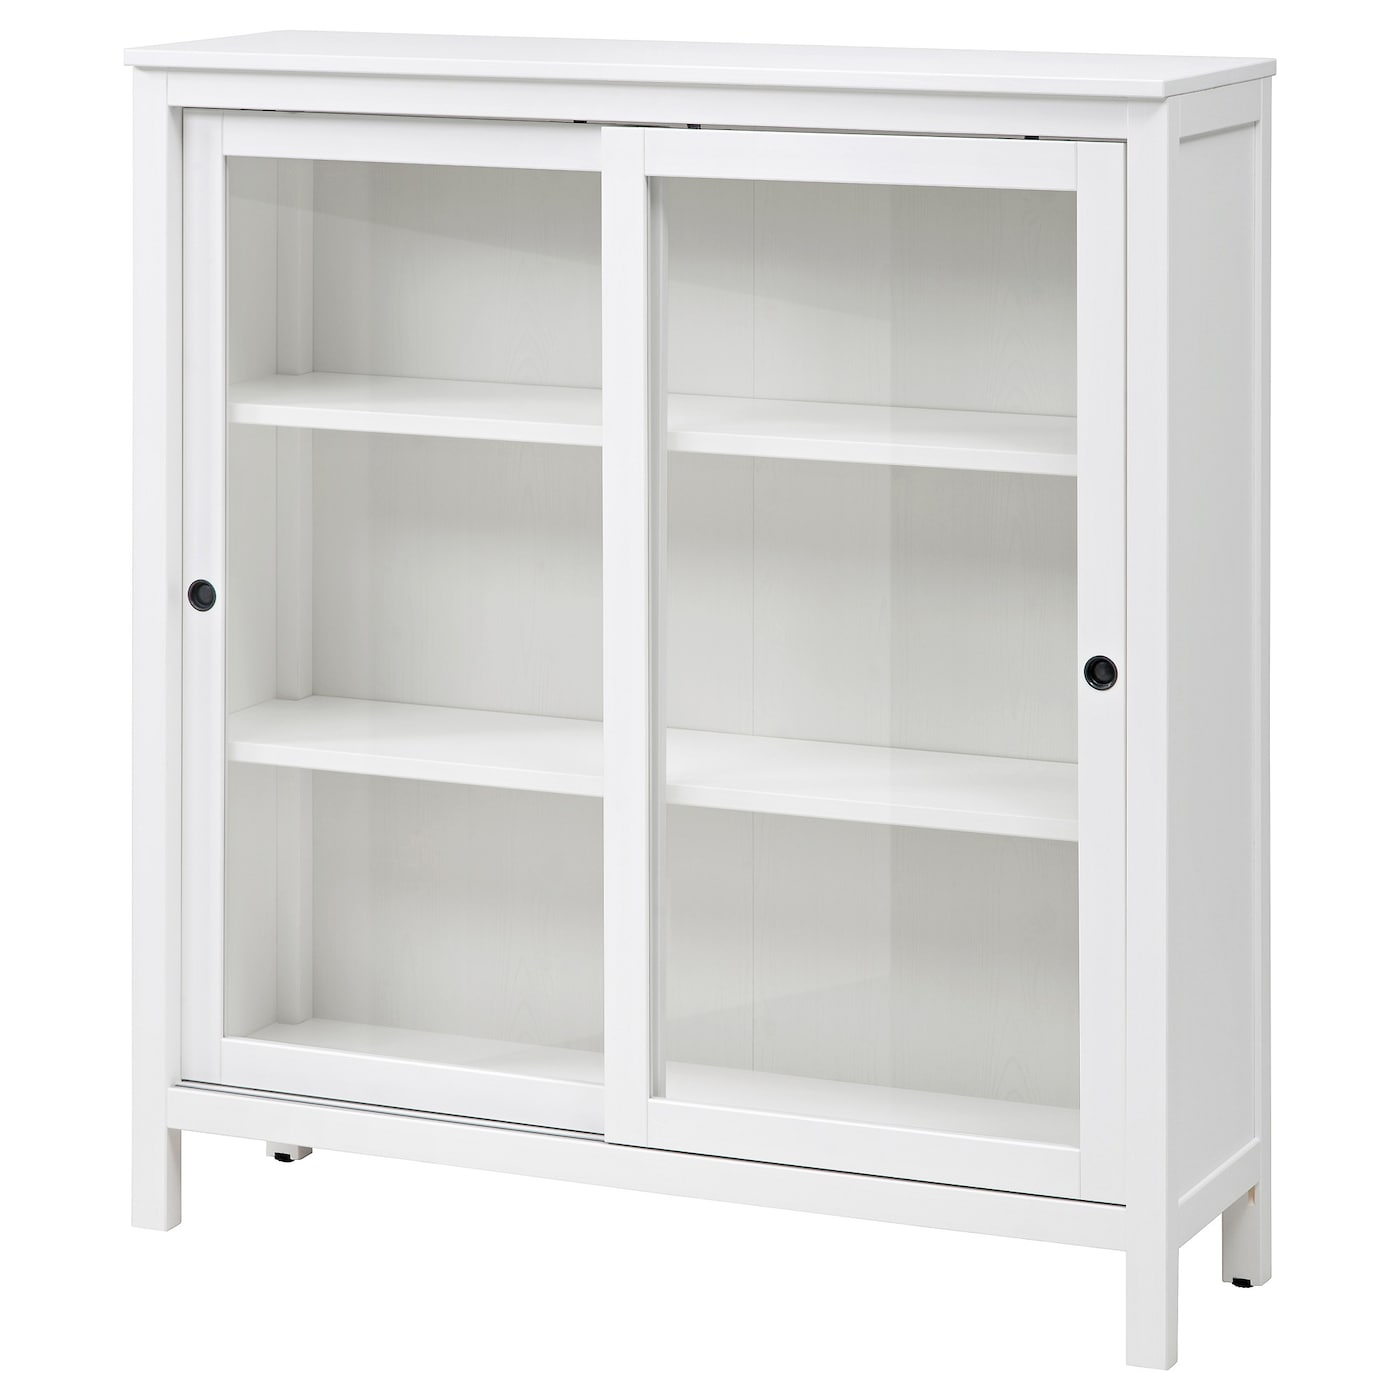 White Kitchen Shelf: HEMNES Glass-door Cabinet White Stain 120 X 130 Cm